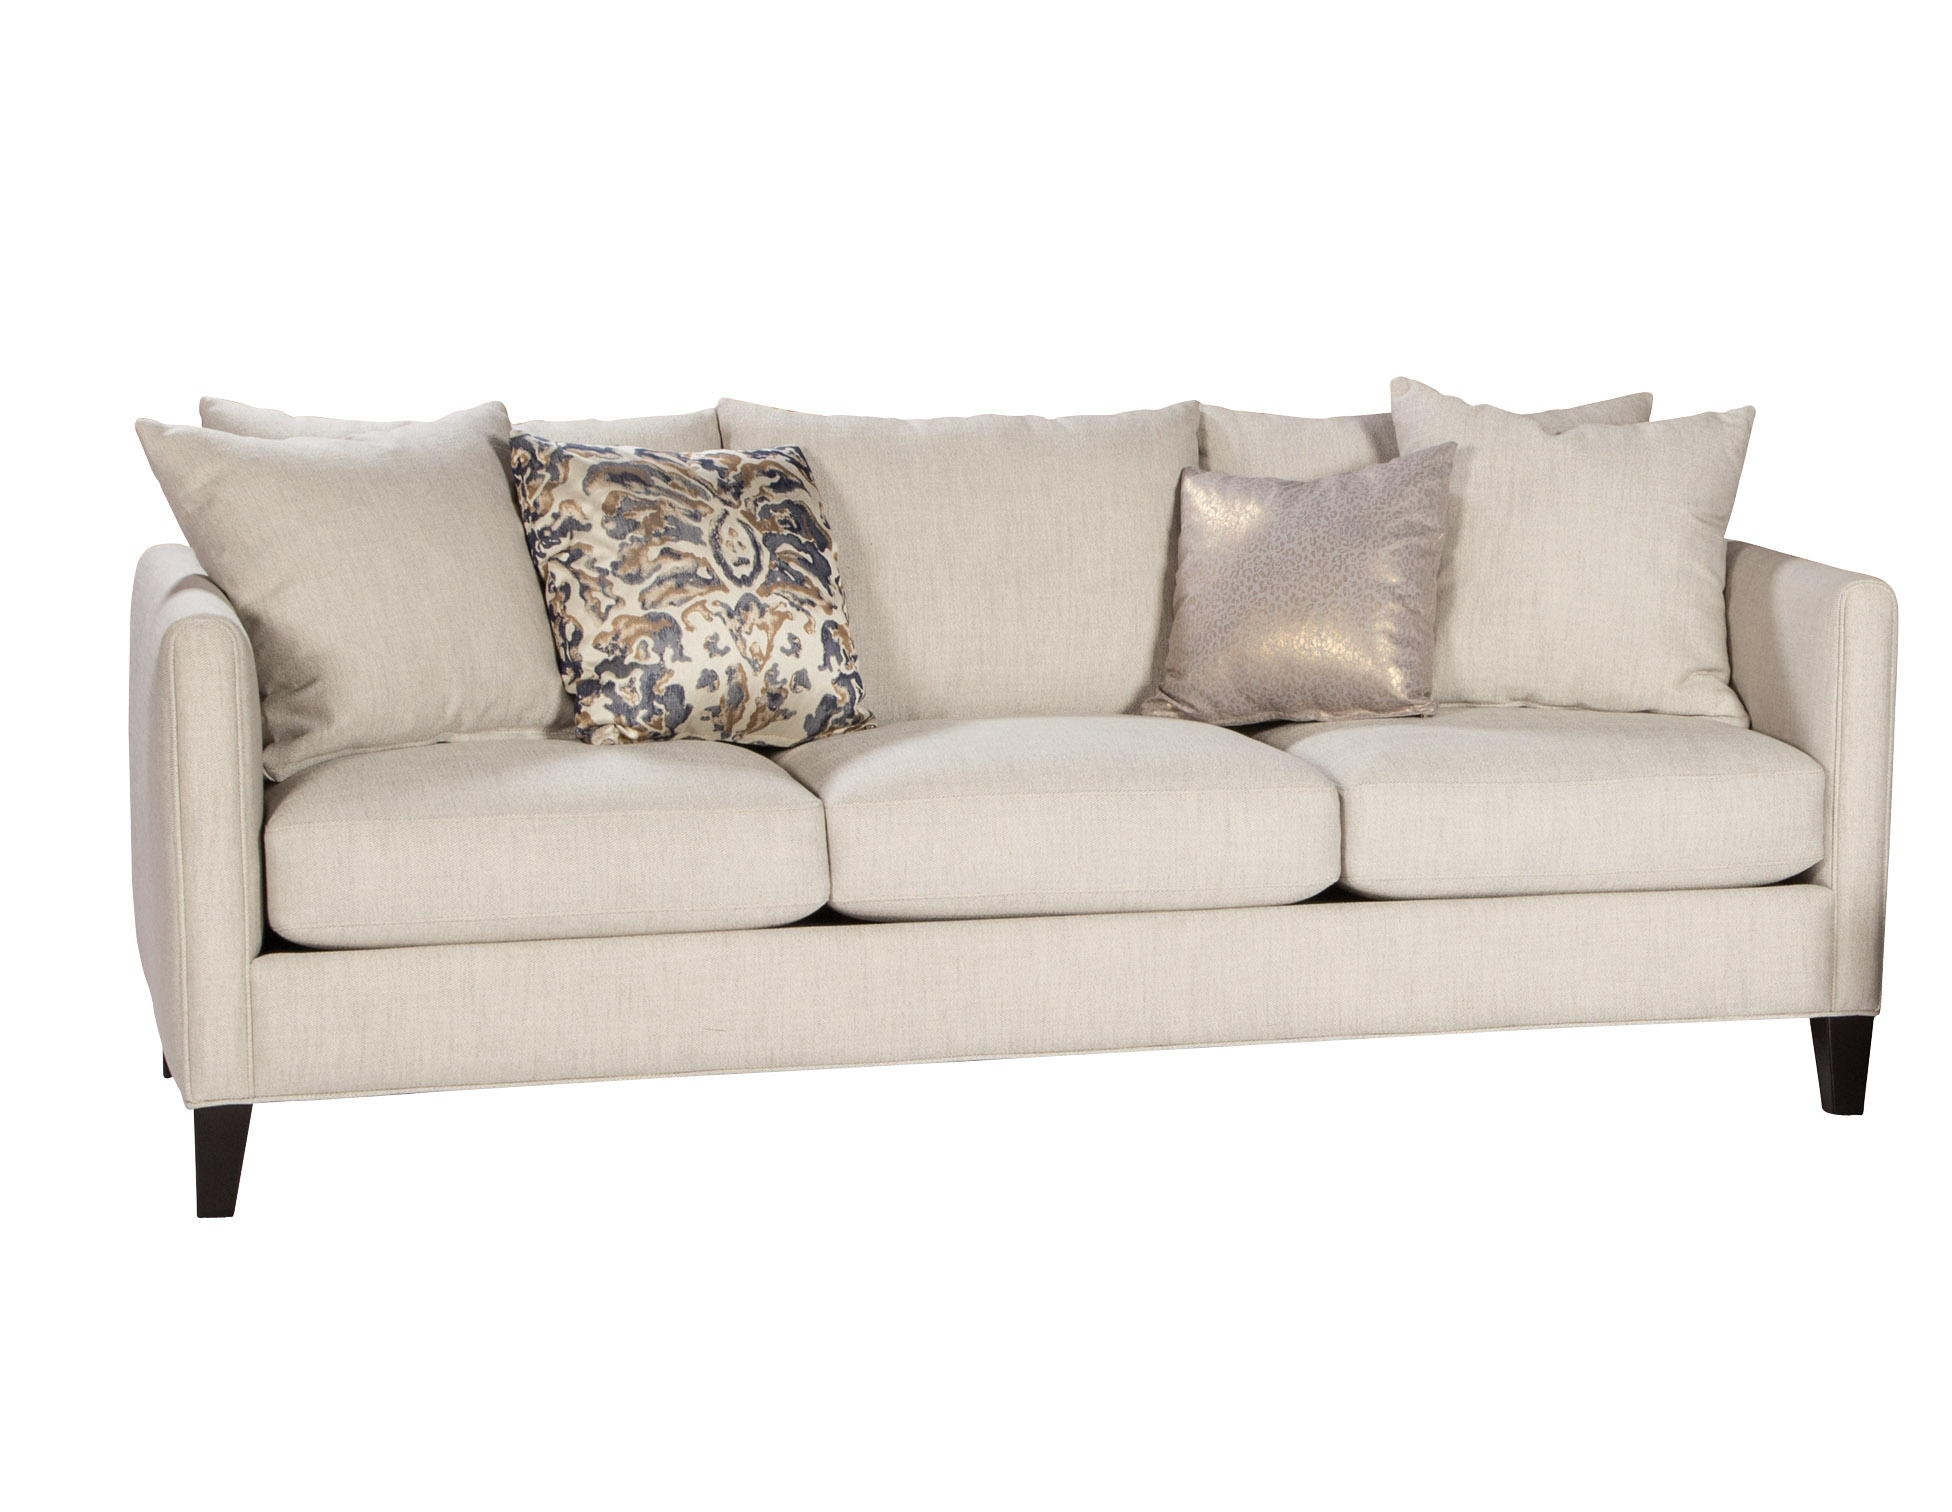 Sofa Mart Fort Wayne In Jonathan Louis International Living Room Estate Sofa  09570 . Sofa Mart Fort Wayne ...